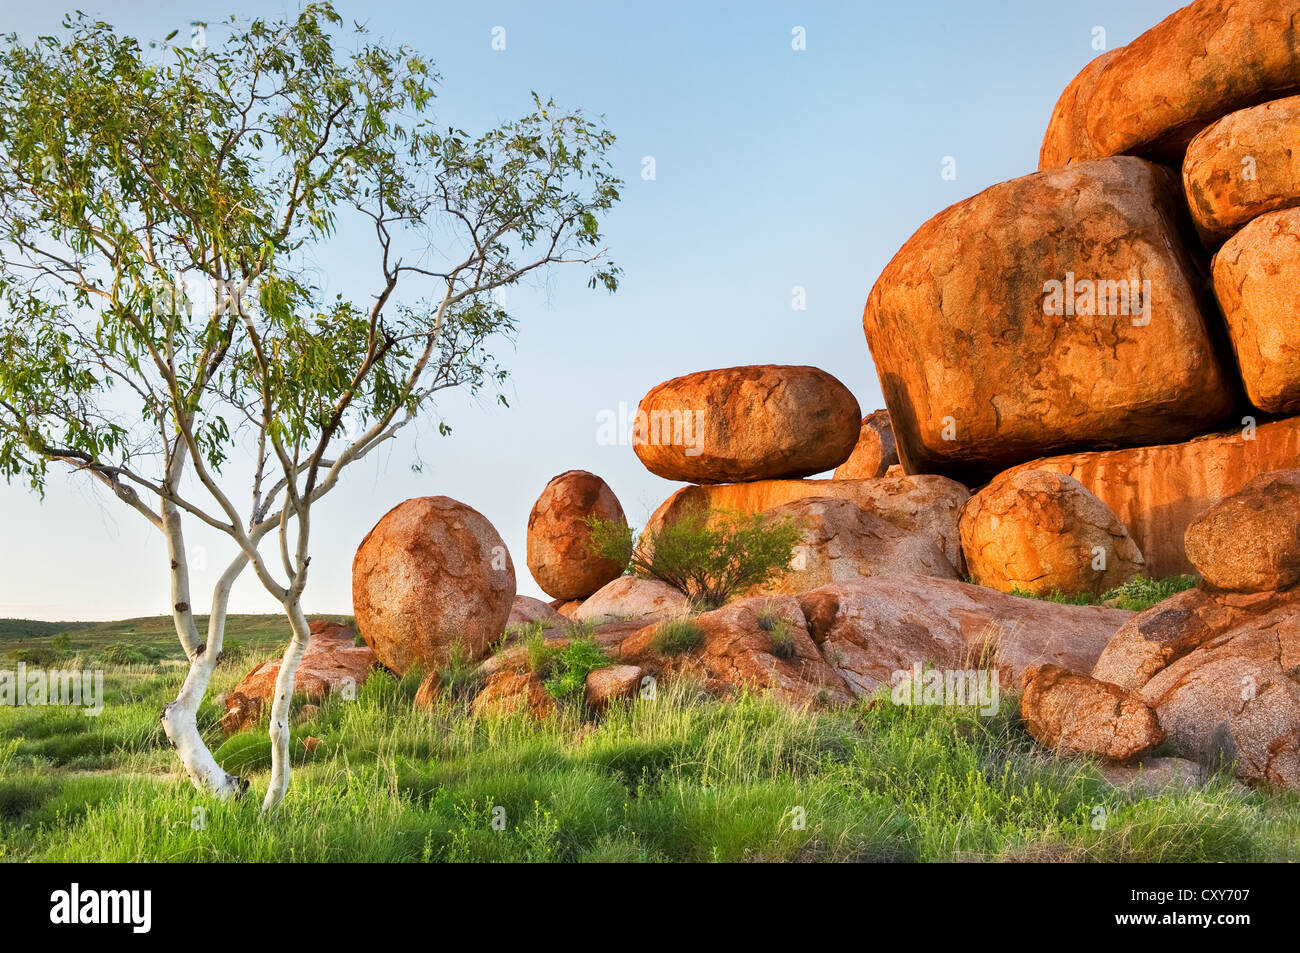 Egg-shaped Rocks of the Devils Marbles. - Stock Image